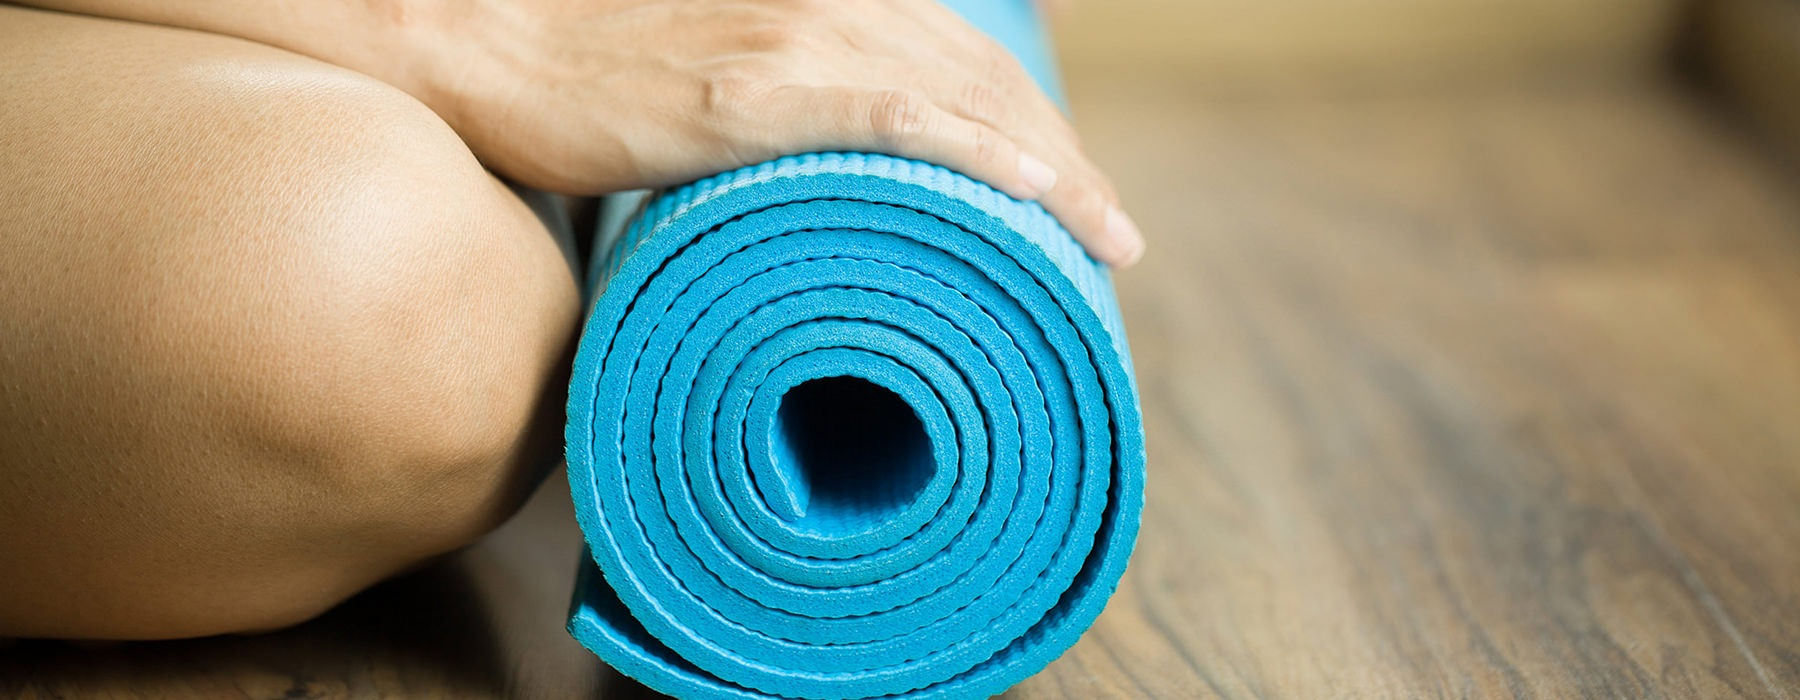 bright blue yoga mat in a roll on the floor